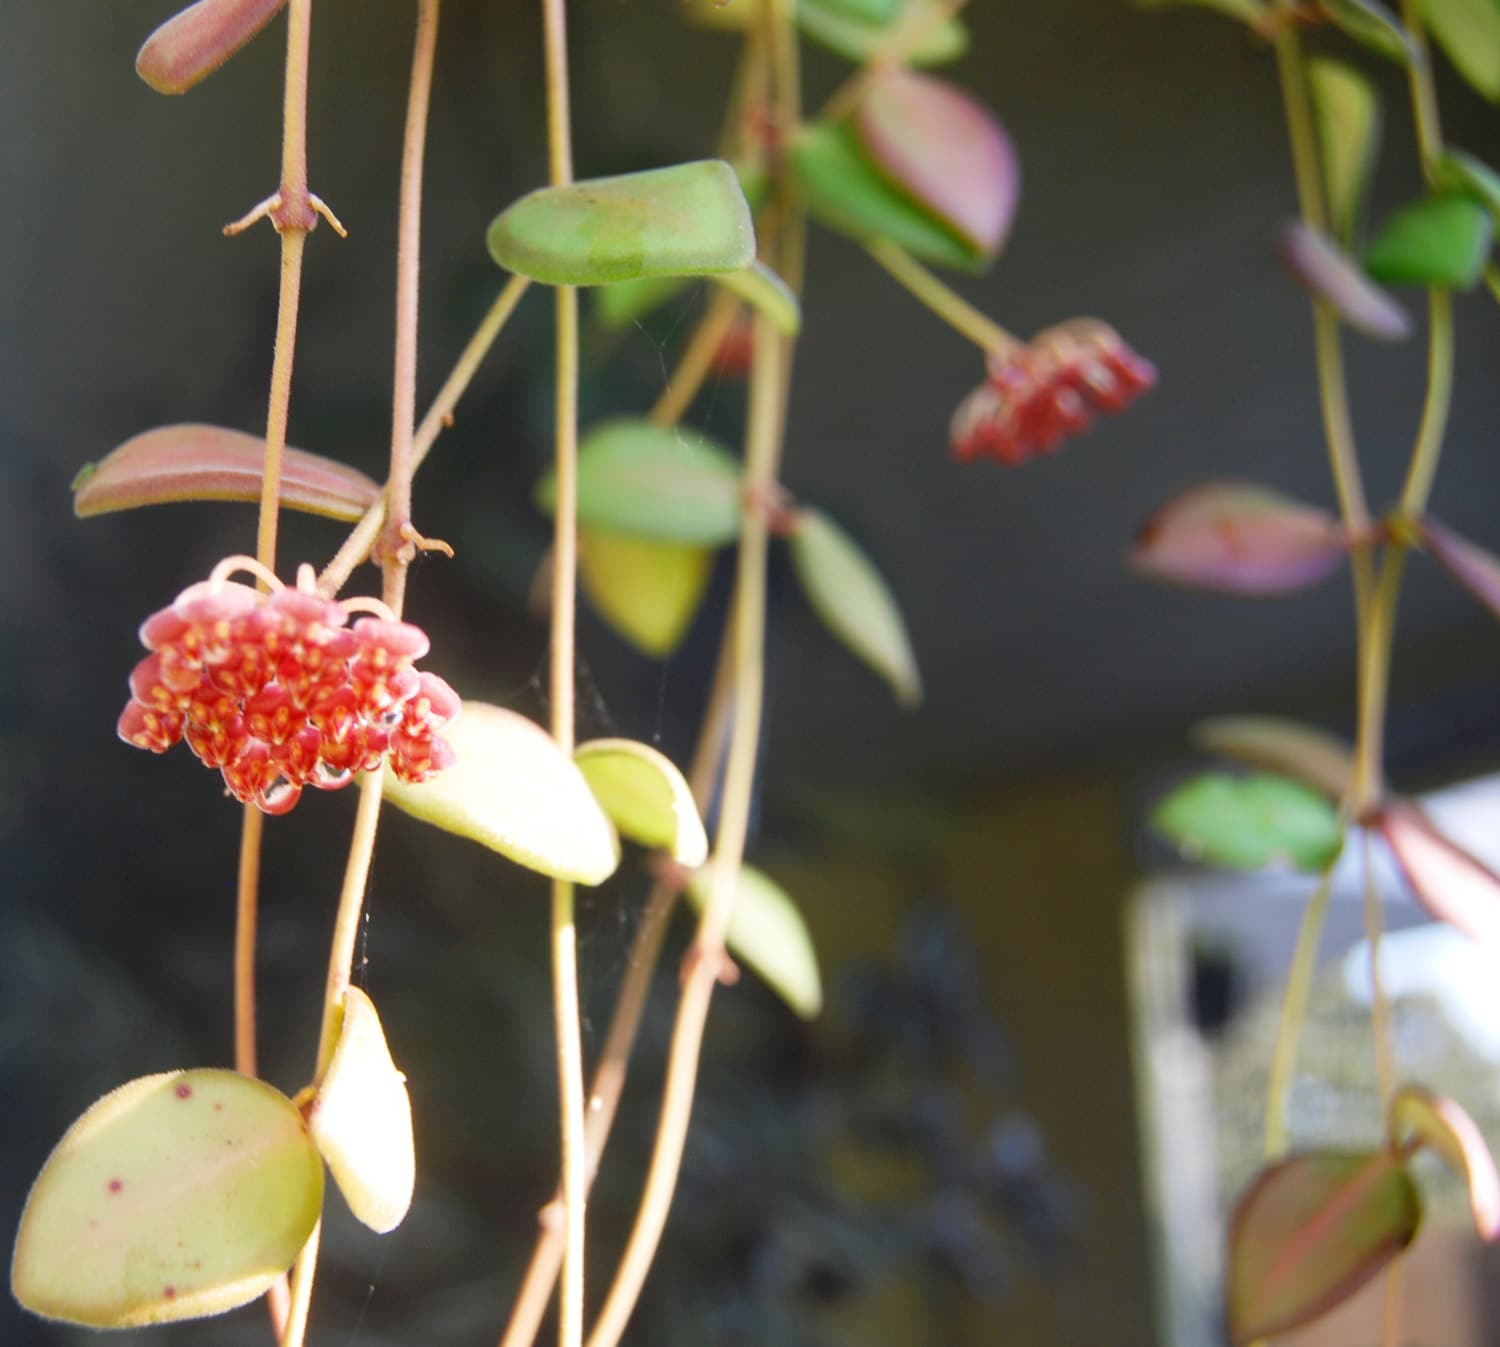 Easy Care Pretty Flowering Tropical Outdoor or House Plant Hoya Wayetii